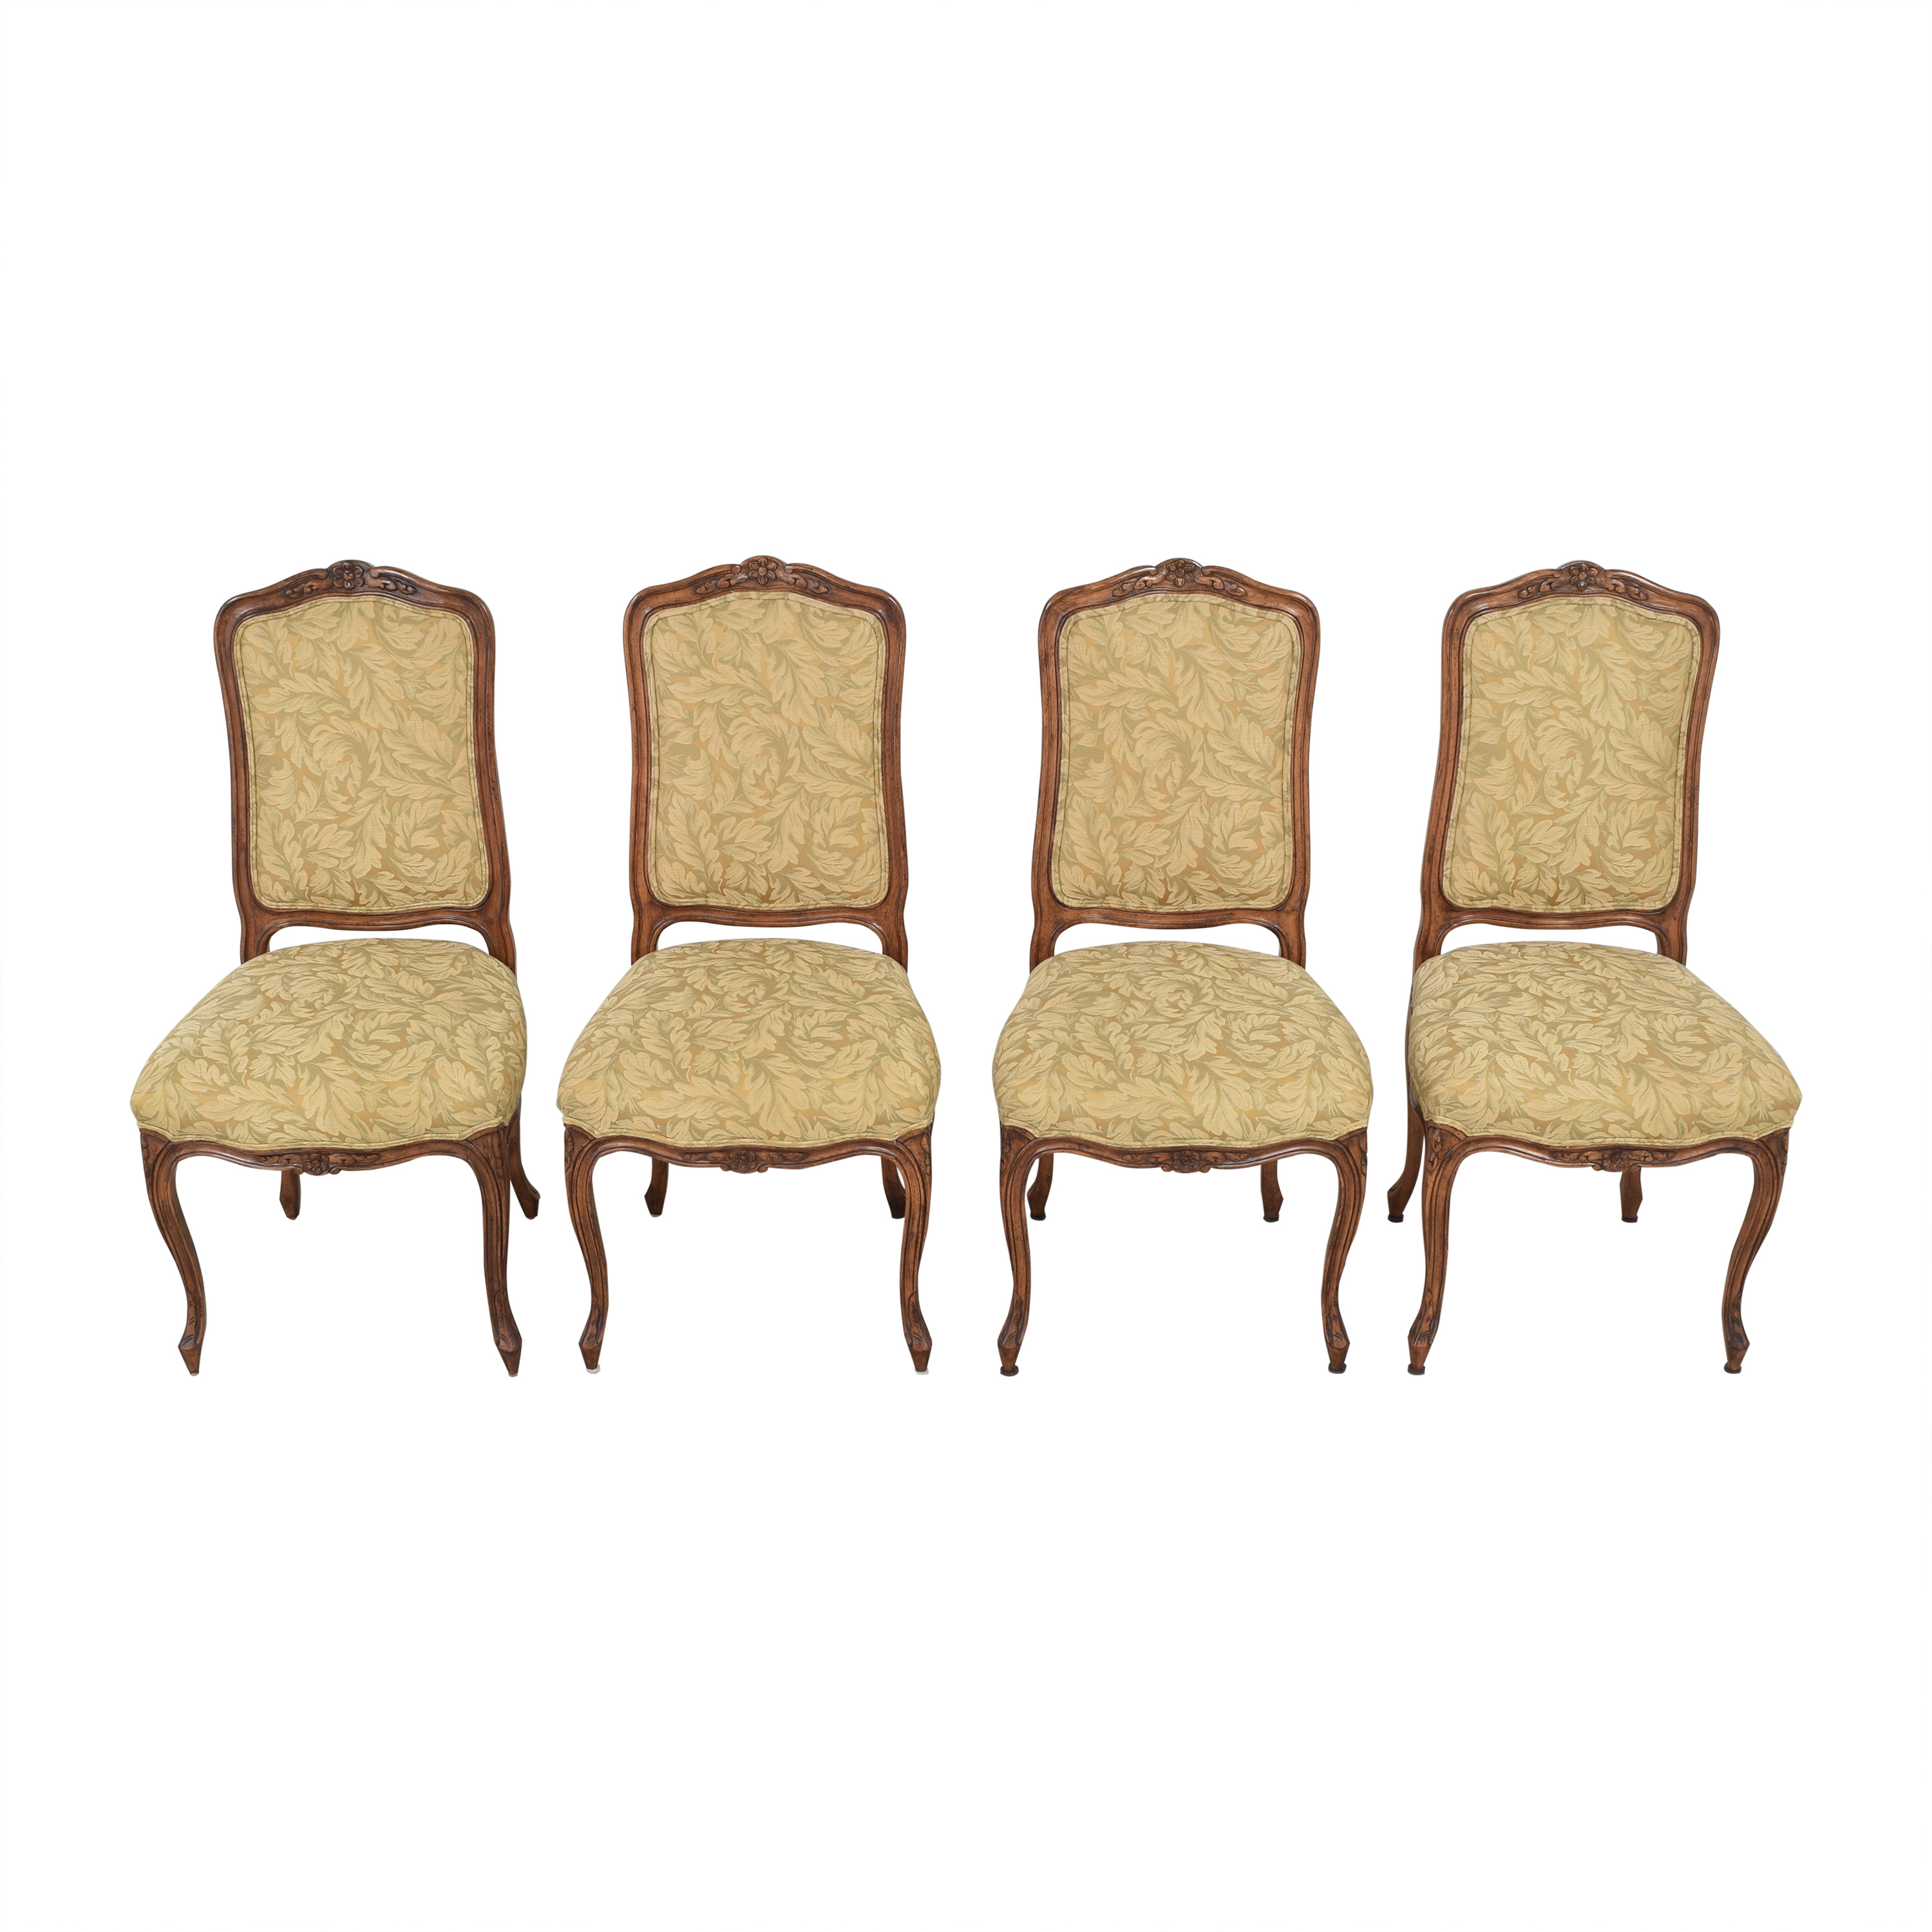 Fremarc Designs Carved Upholstered Dining Chairs Fremarc Designs